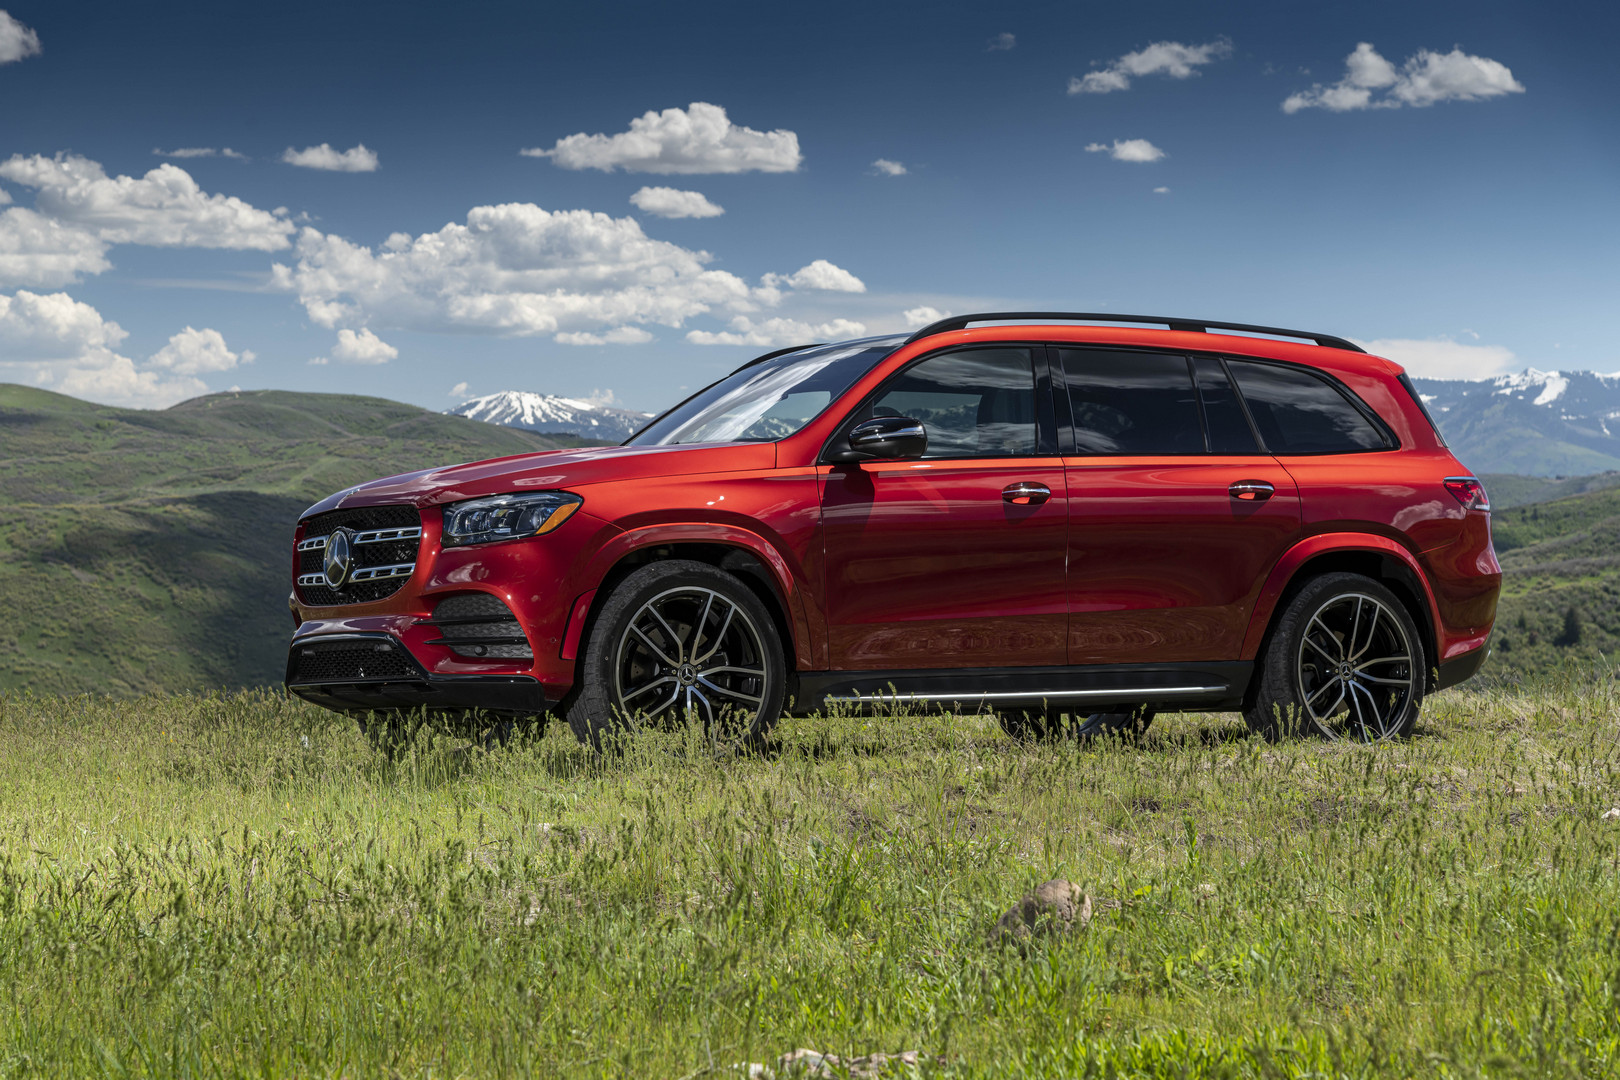 Red Mercedes-Benz GLS 580